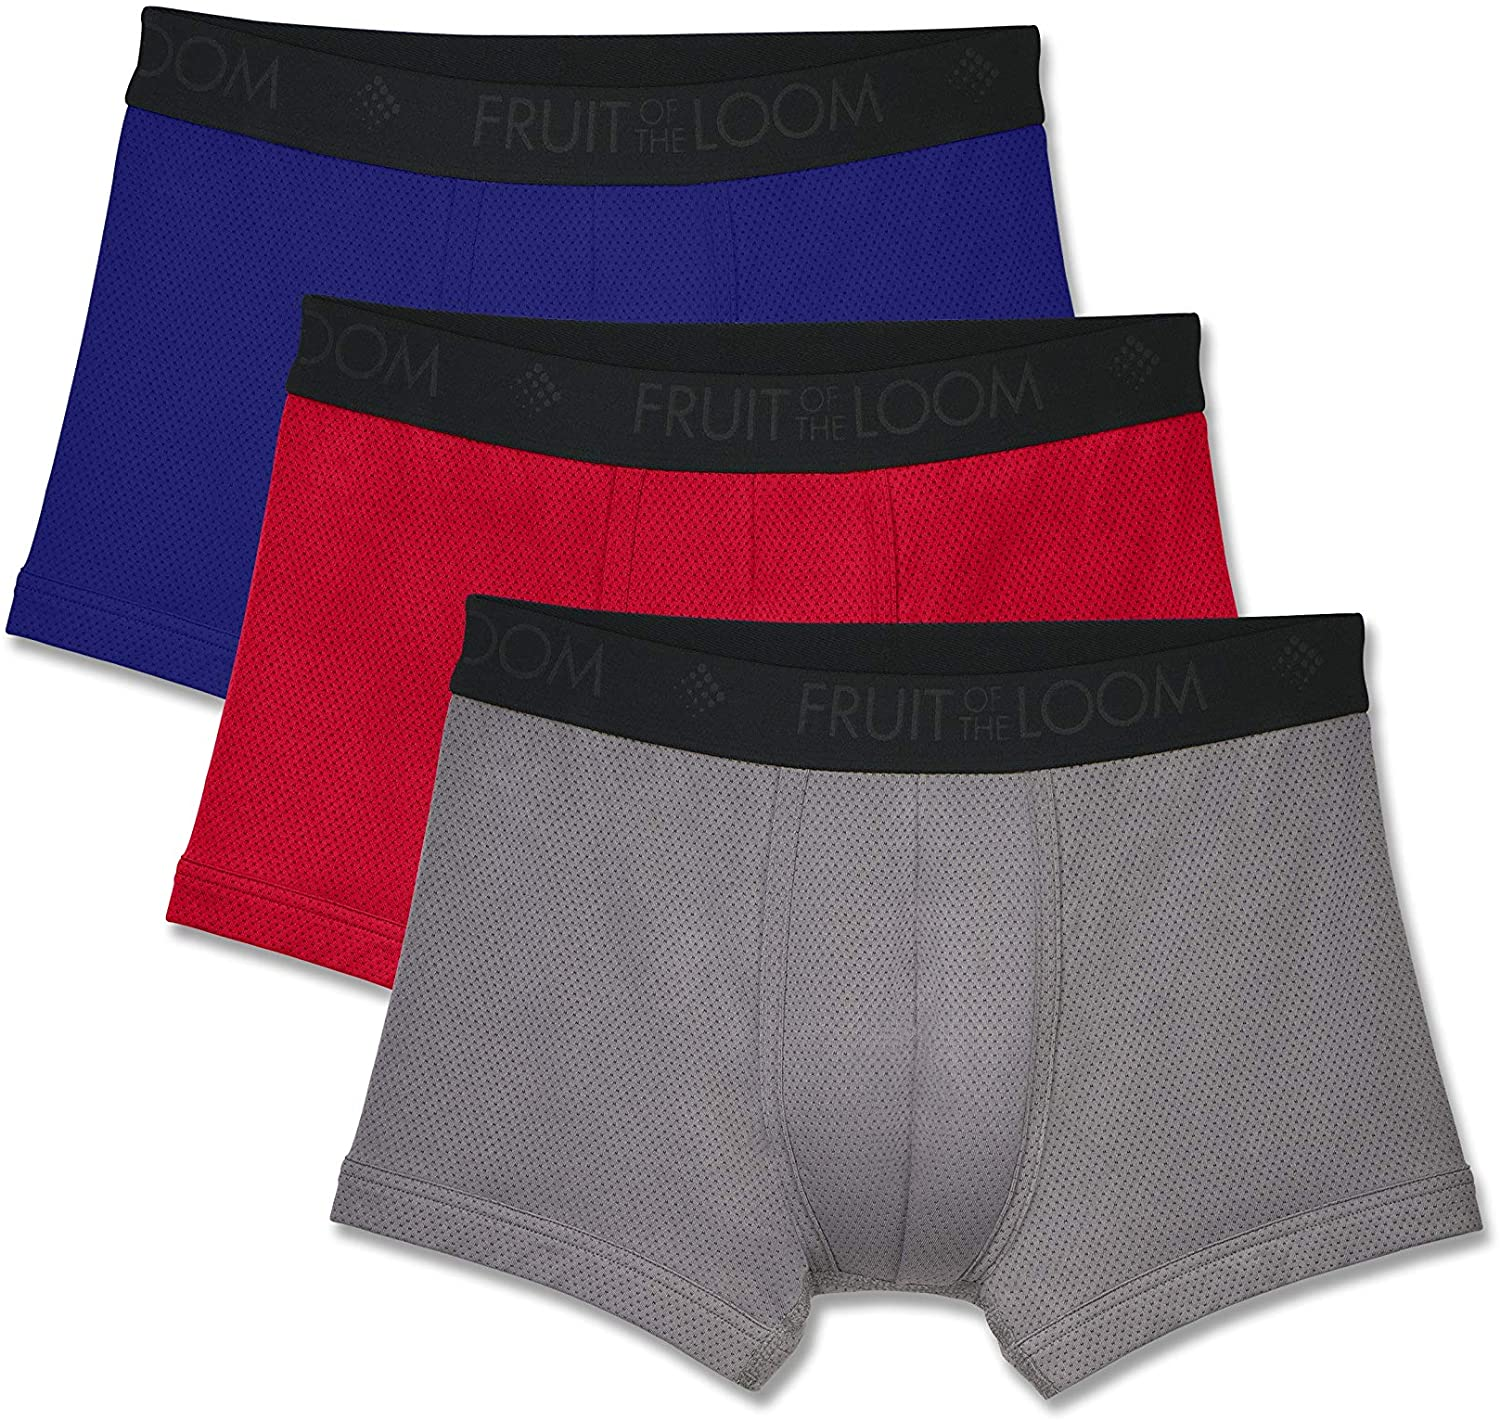 Fruit of the Loom Men's Breathable Underwear, Micro Mesh - Assorted Color - Short Leg Boxer Brief, 2X-Large